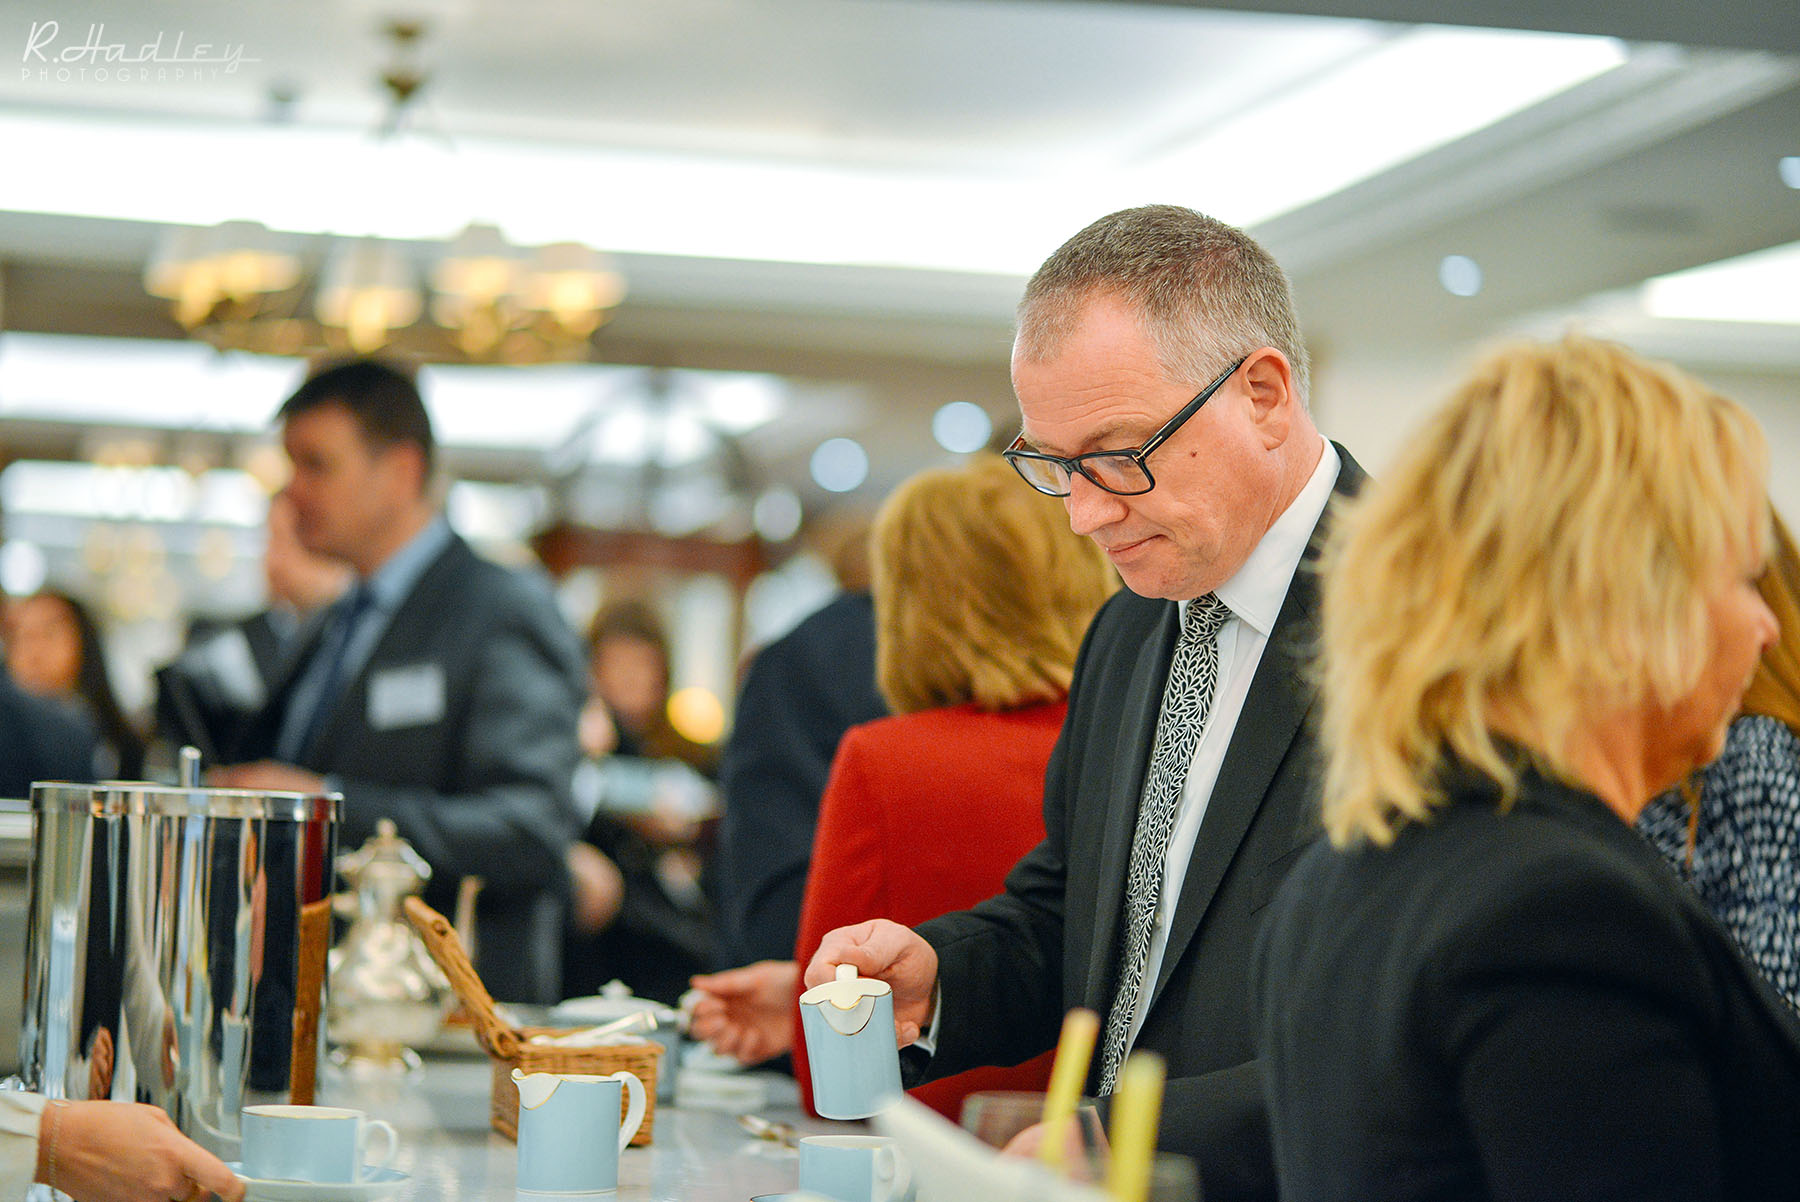 Kevin Green | Event photographer in London at Fortnum & Mason